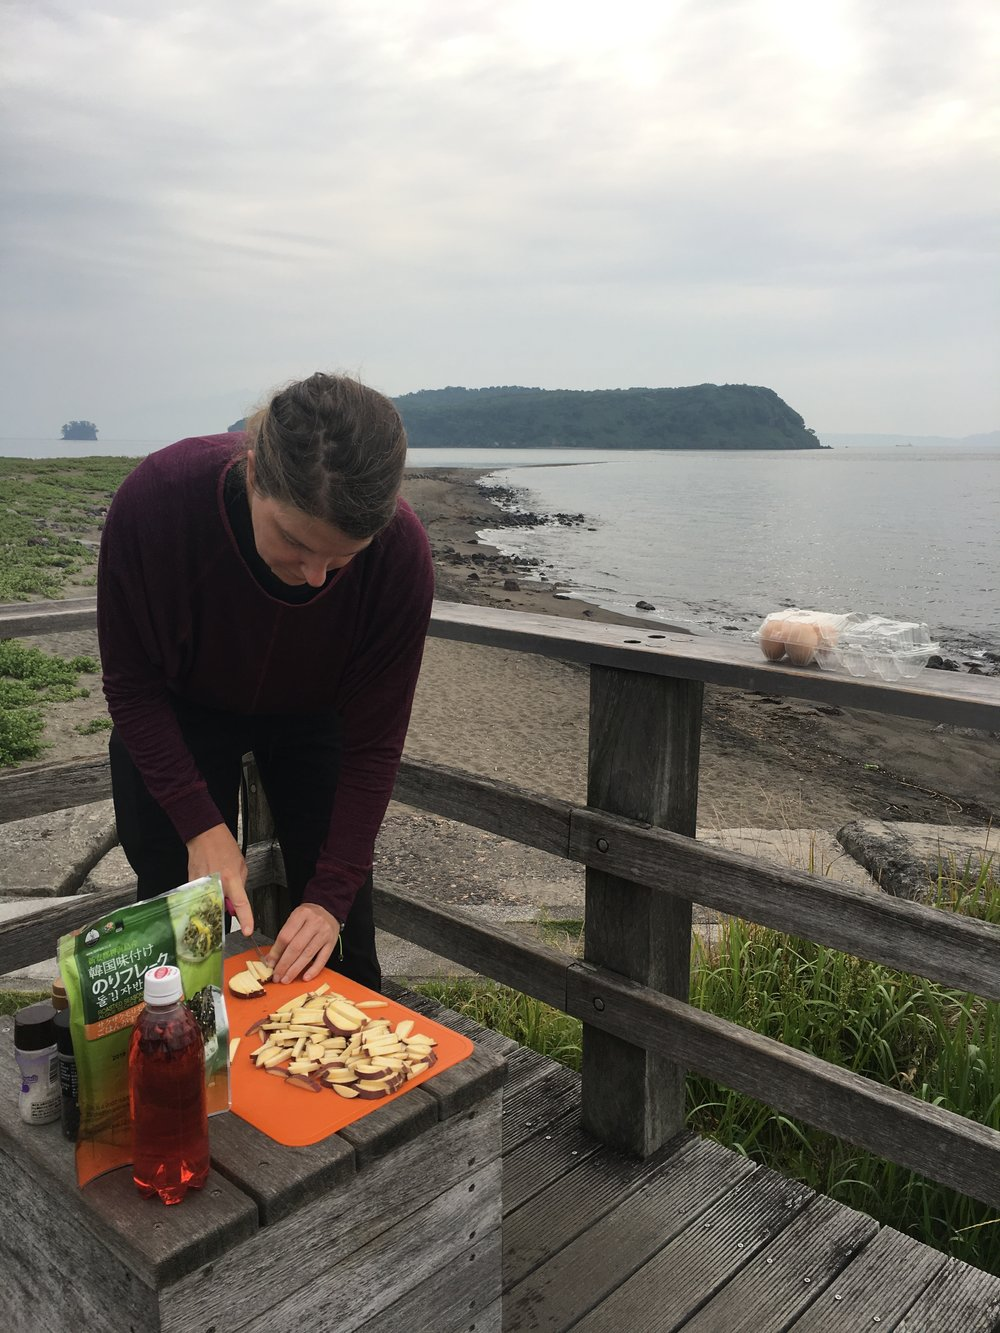 Making breakfast on the shores of the water